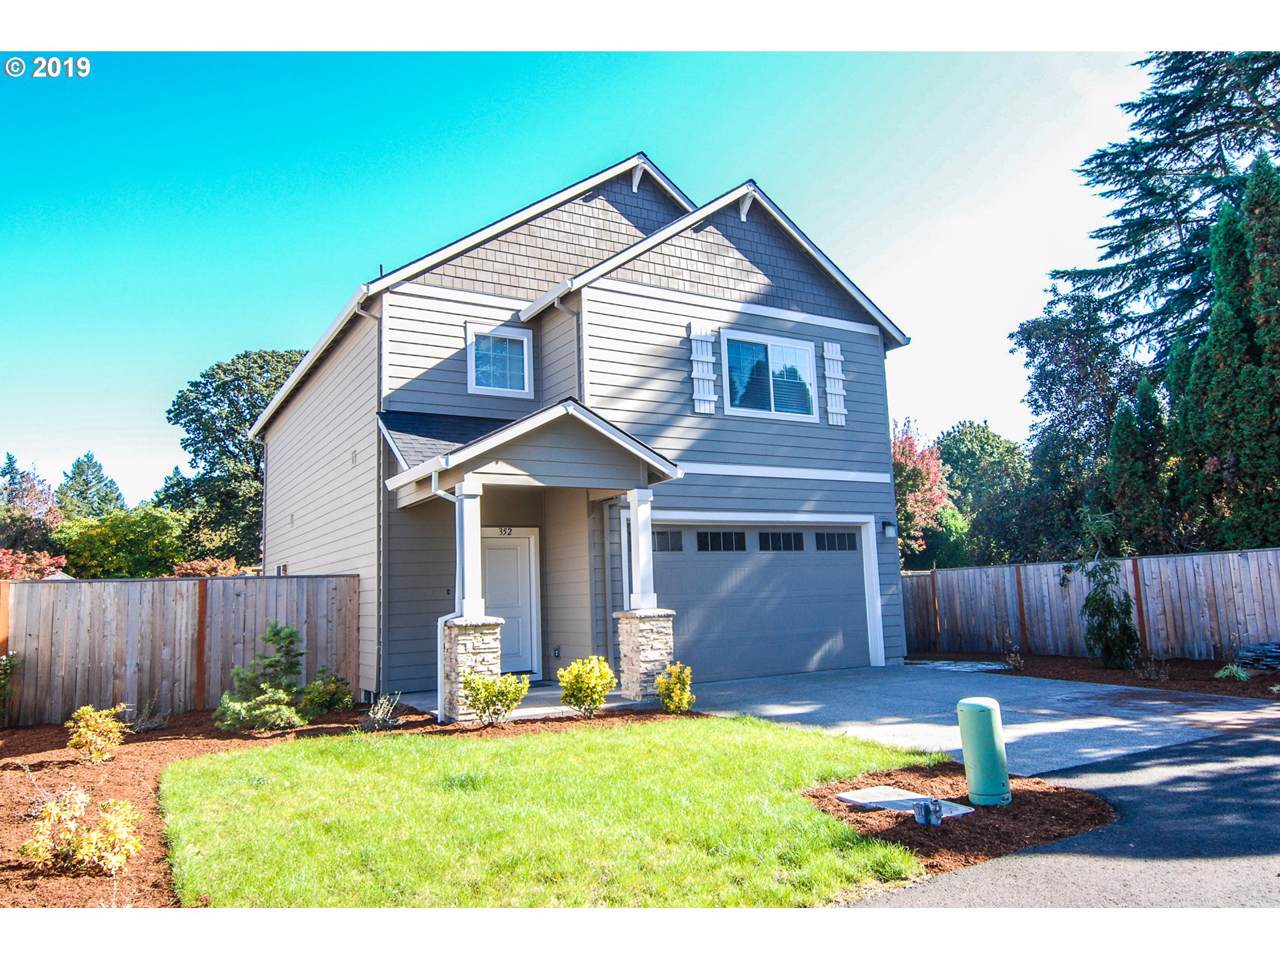 352 37TH Ave - Photo 1